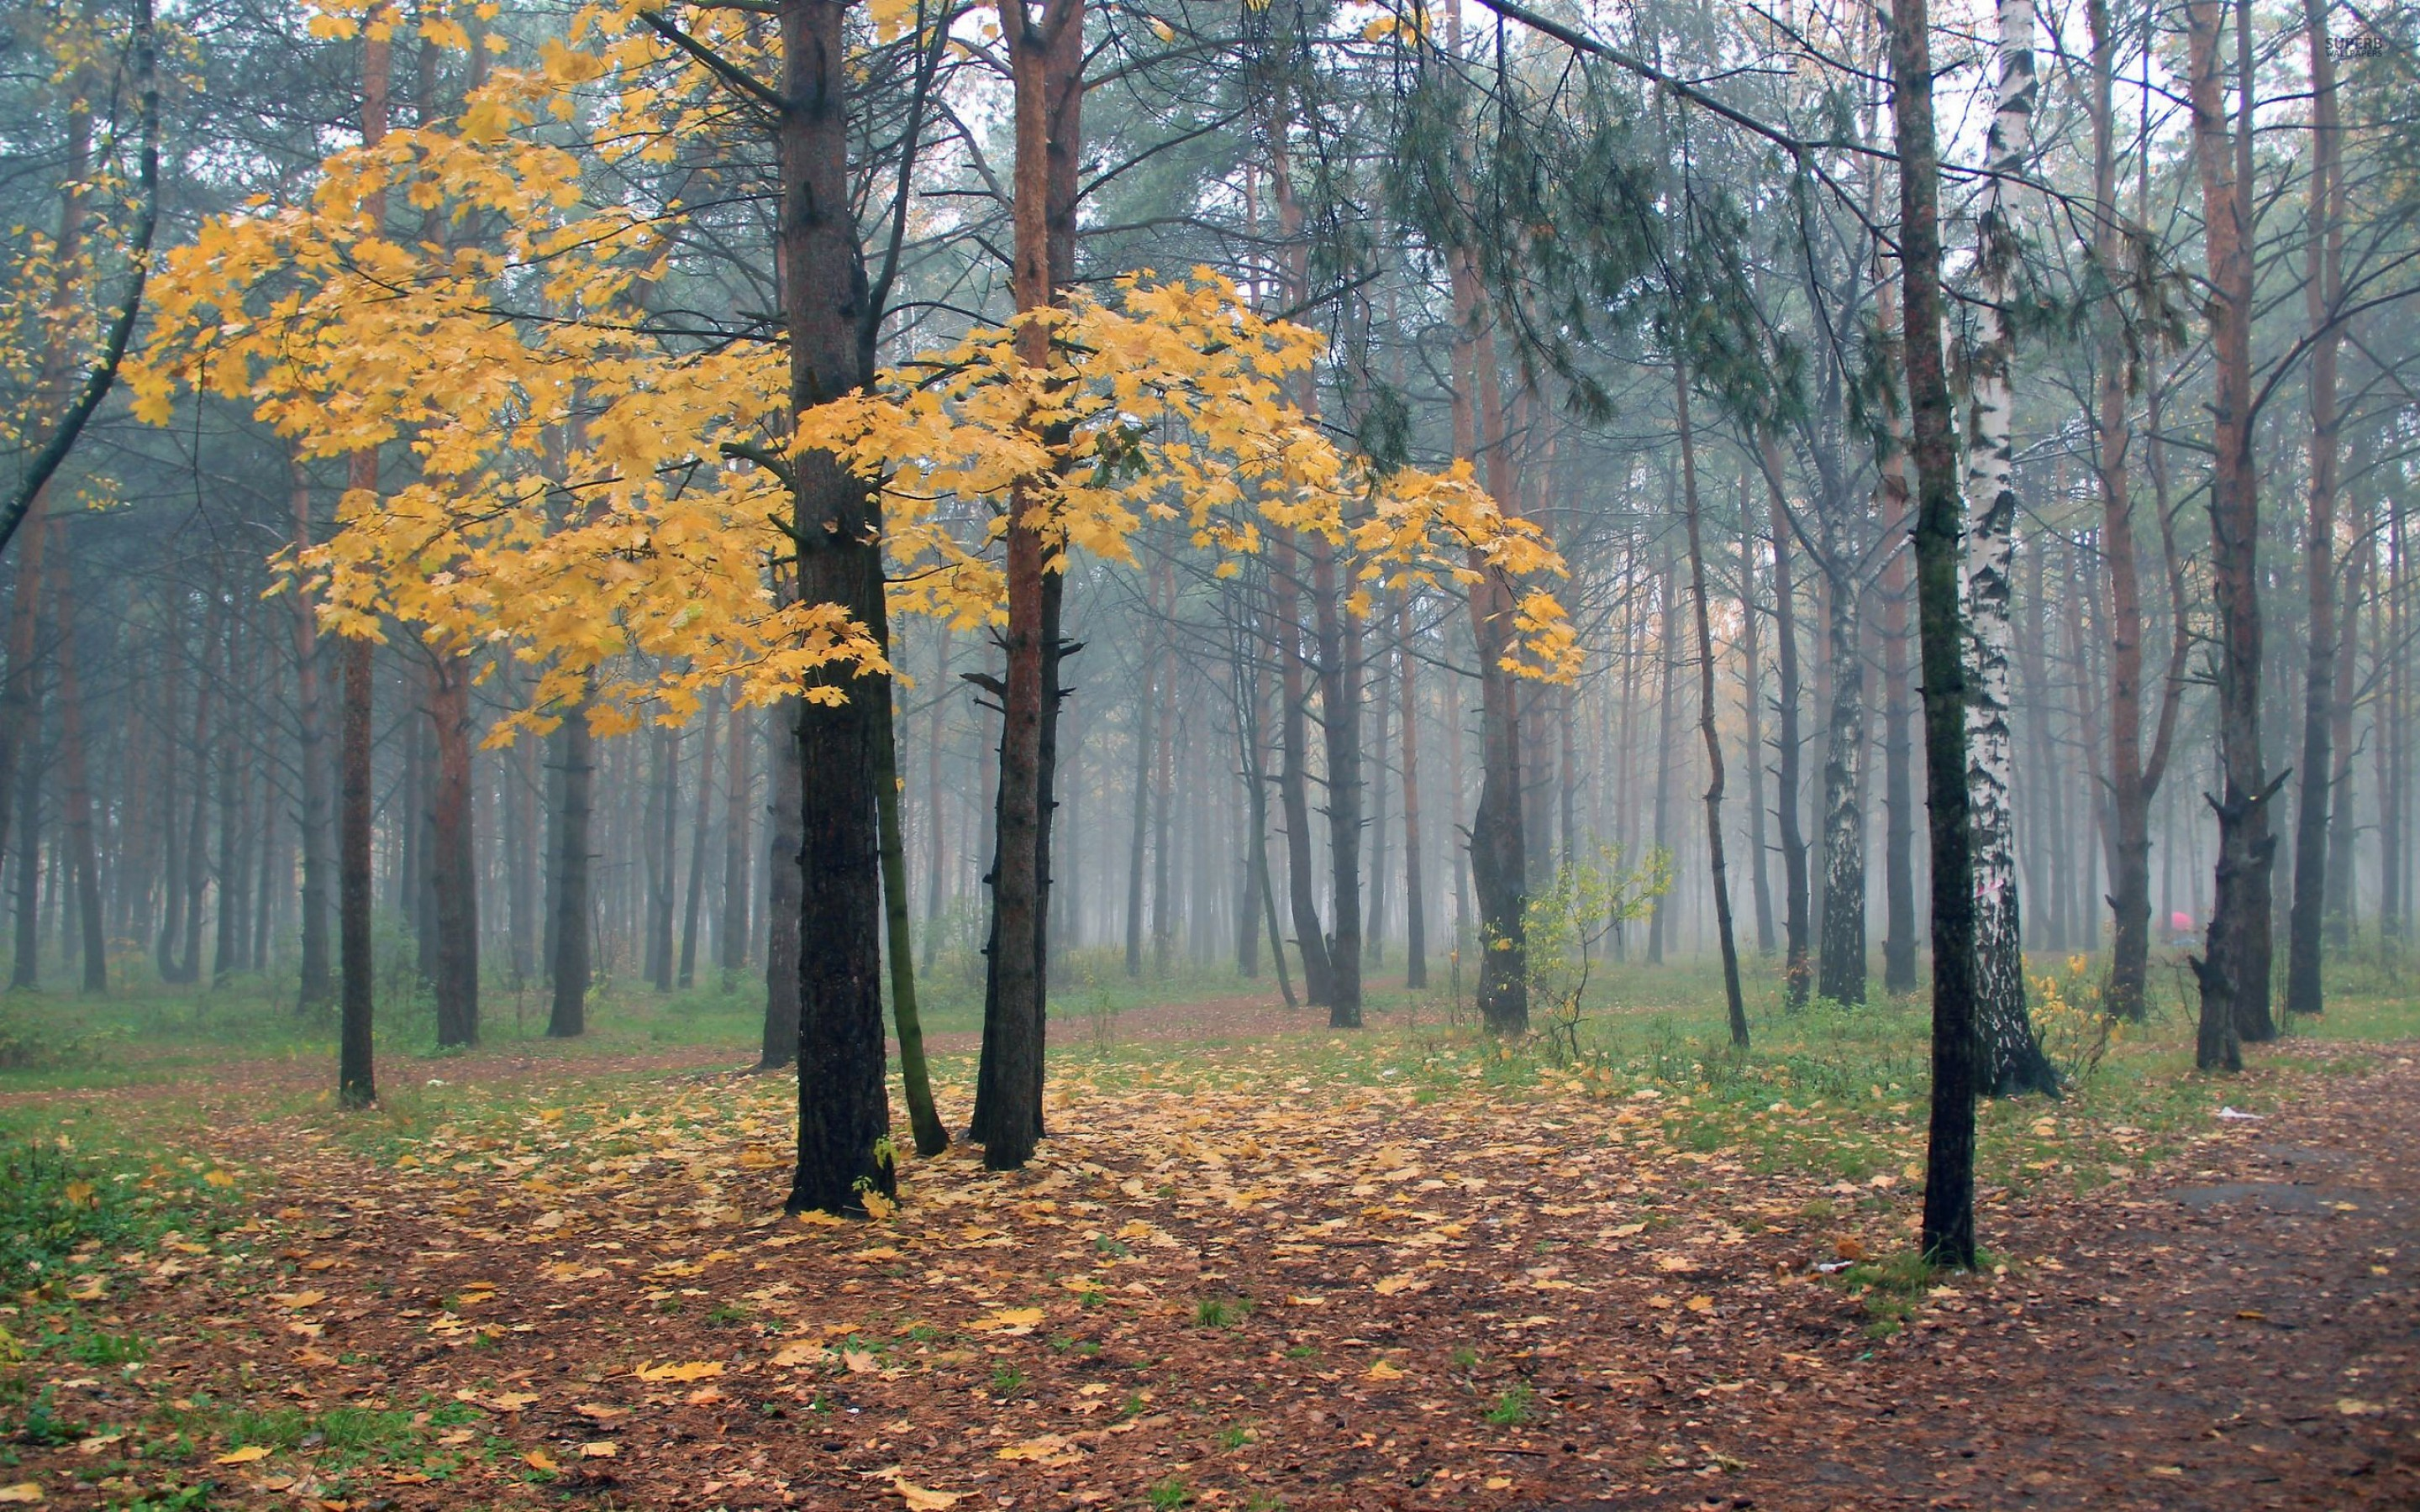 Fall Hd Wallpapers 1080p Foggy Autumn Forest Wallpaper Nature And Landscape